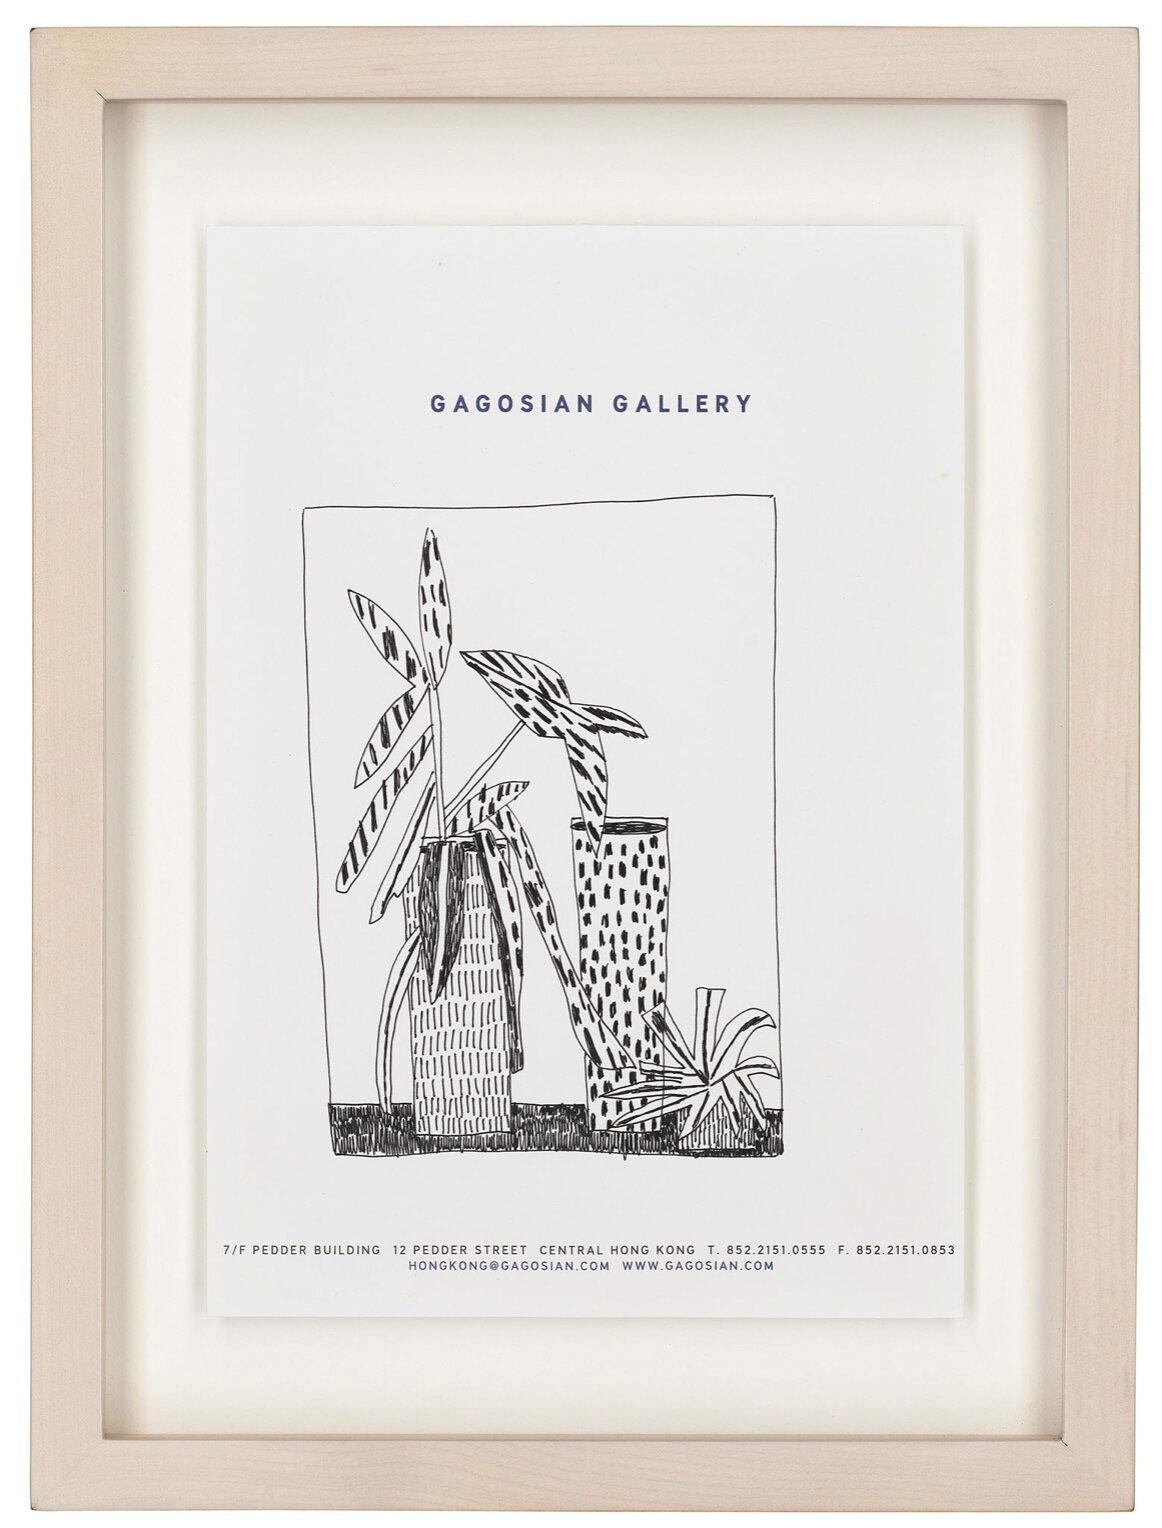 Original Untitled Plant and Vase Drawing by Jonas Wood